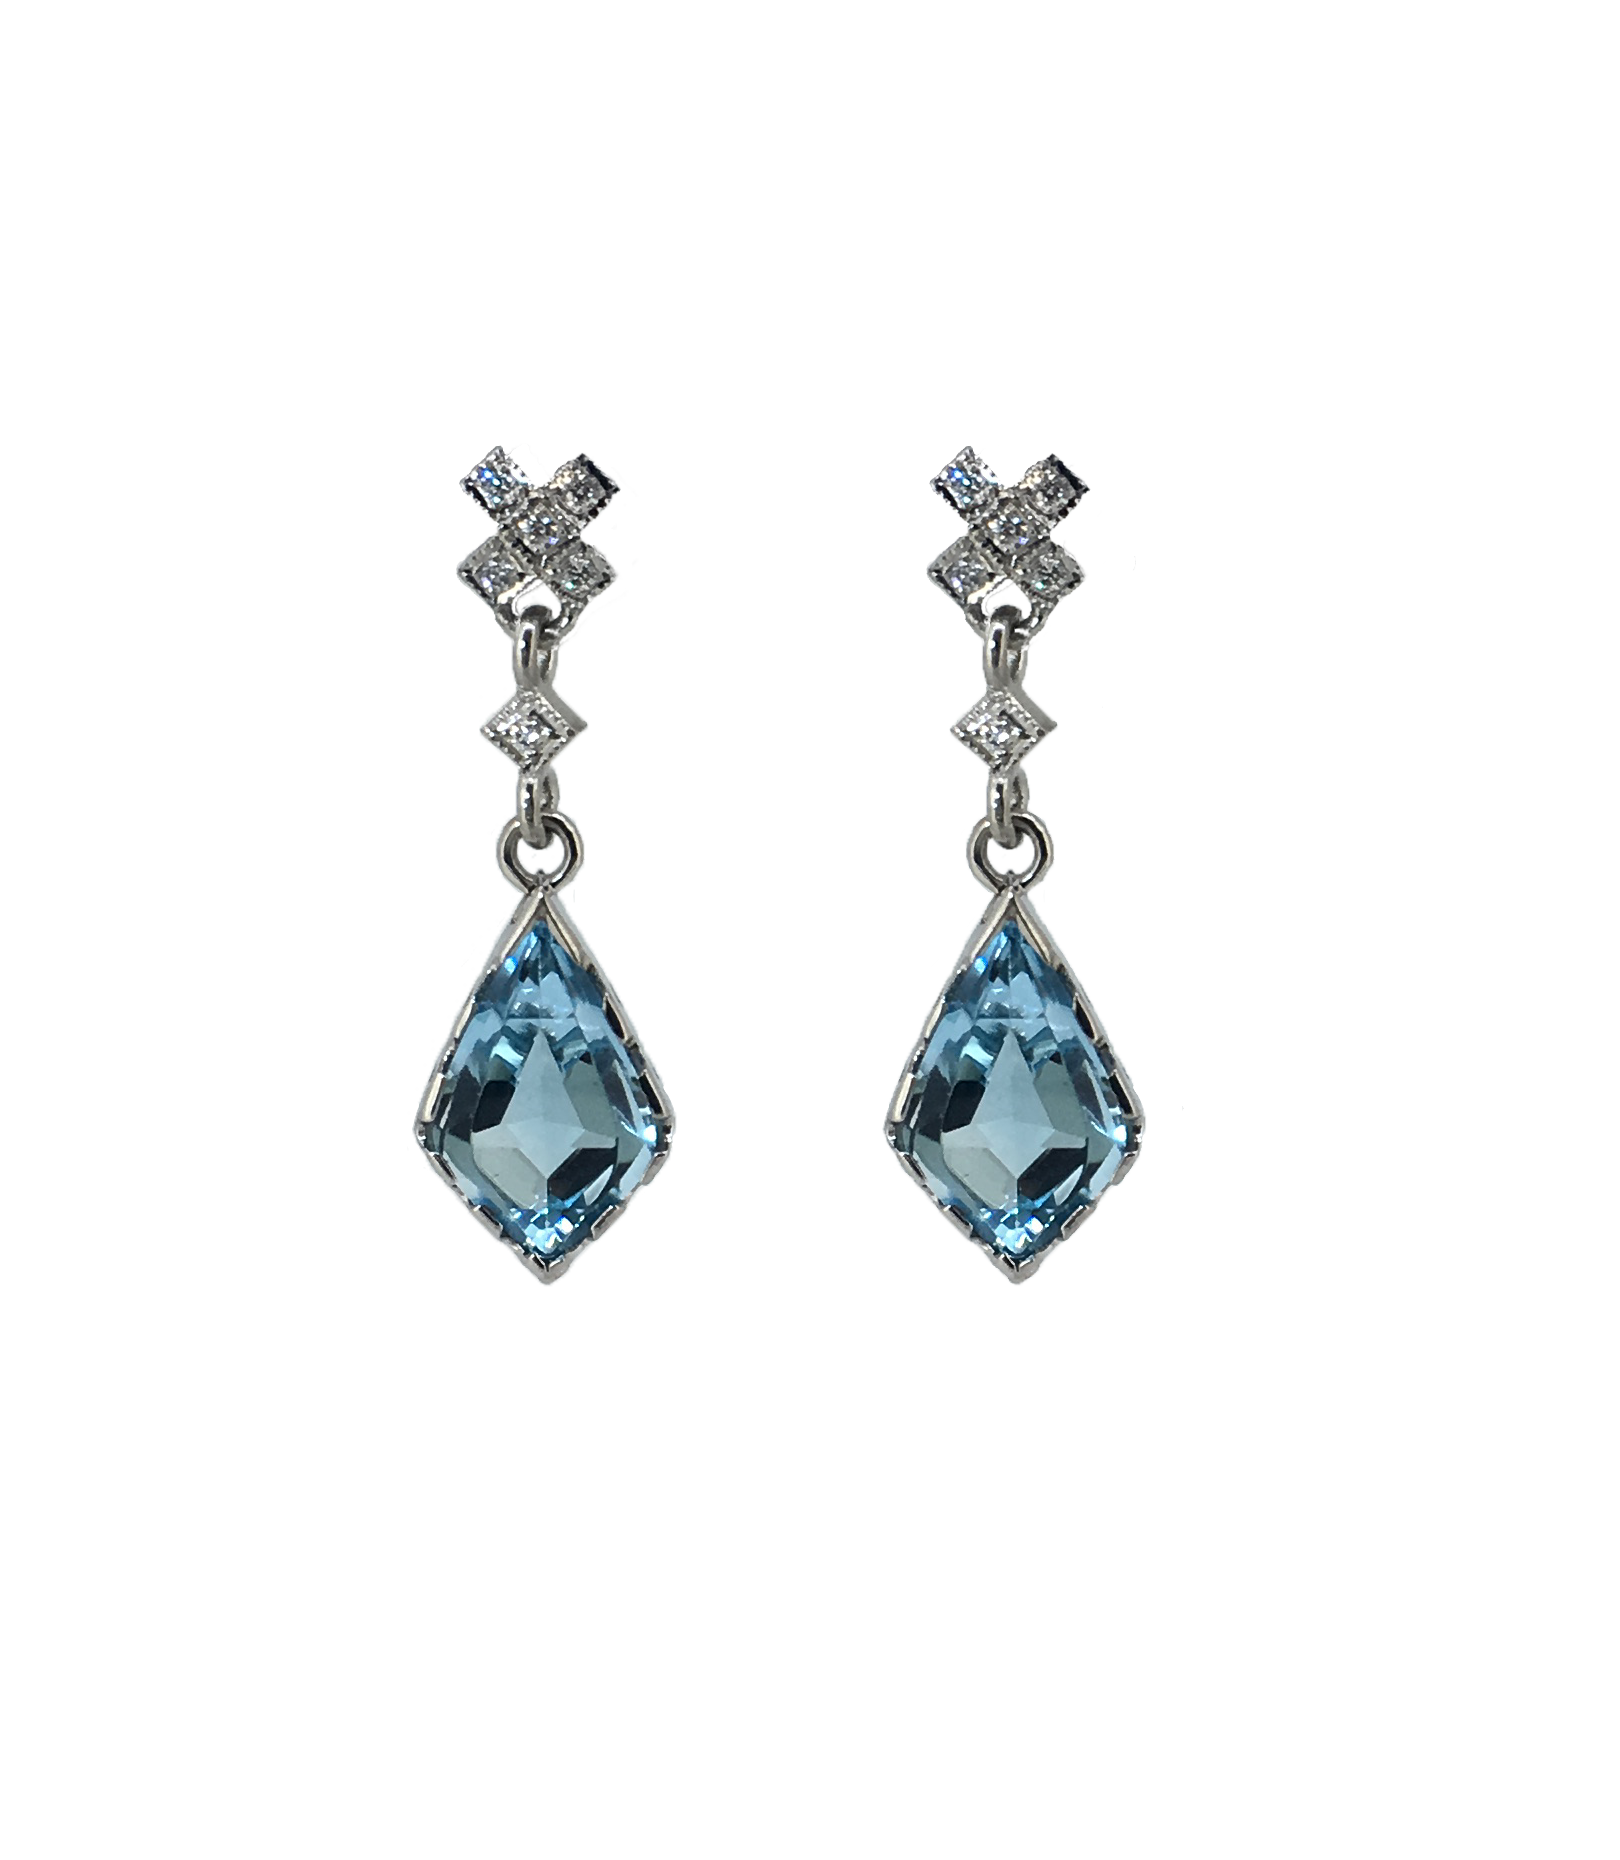 Topaz and Diamond Earrings Bespoke by TORY and KO.png